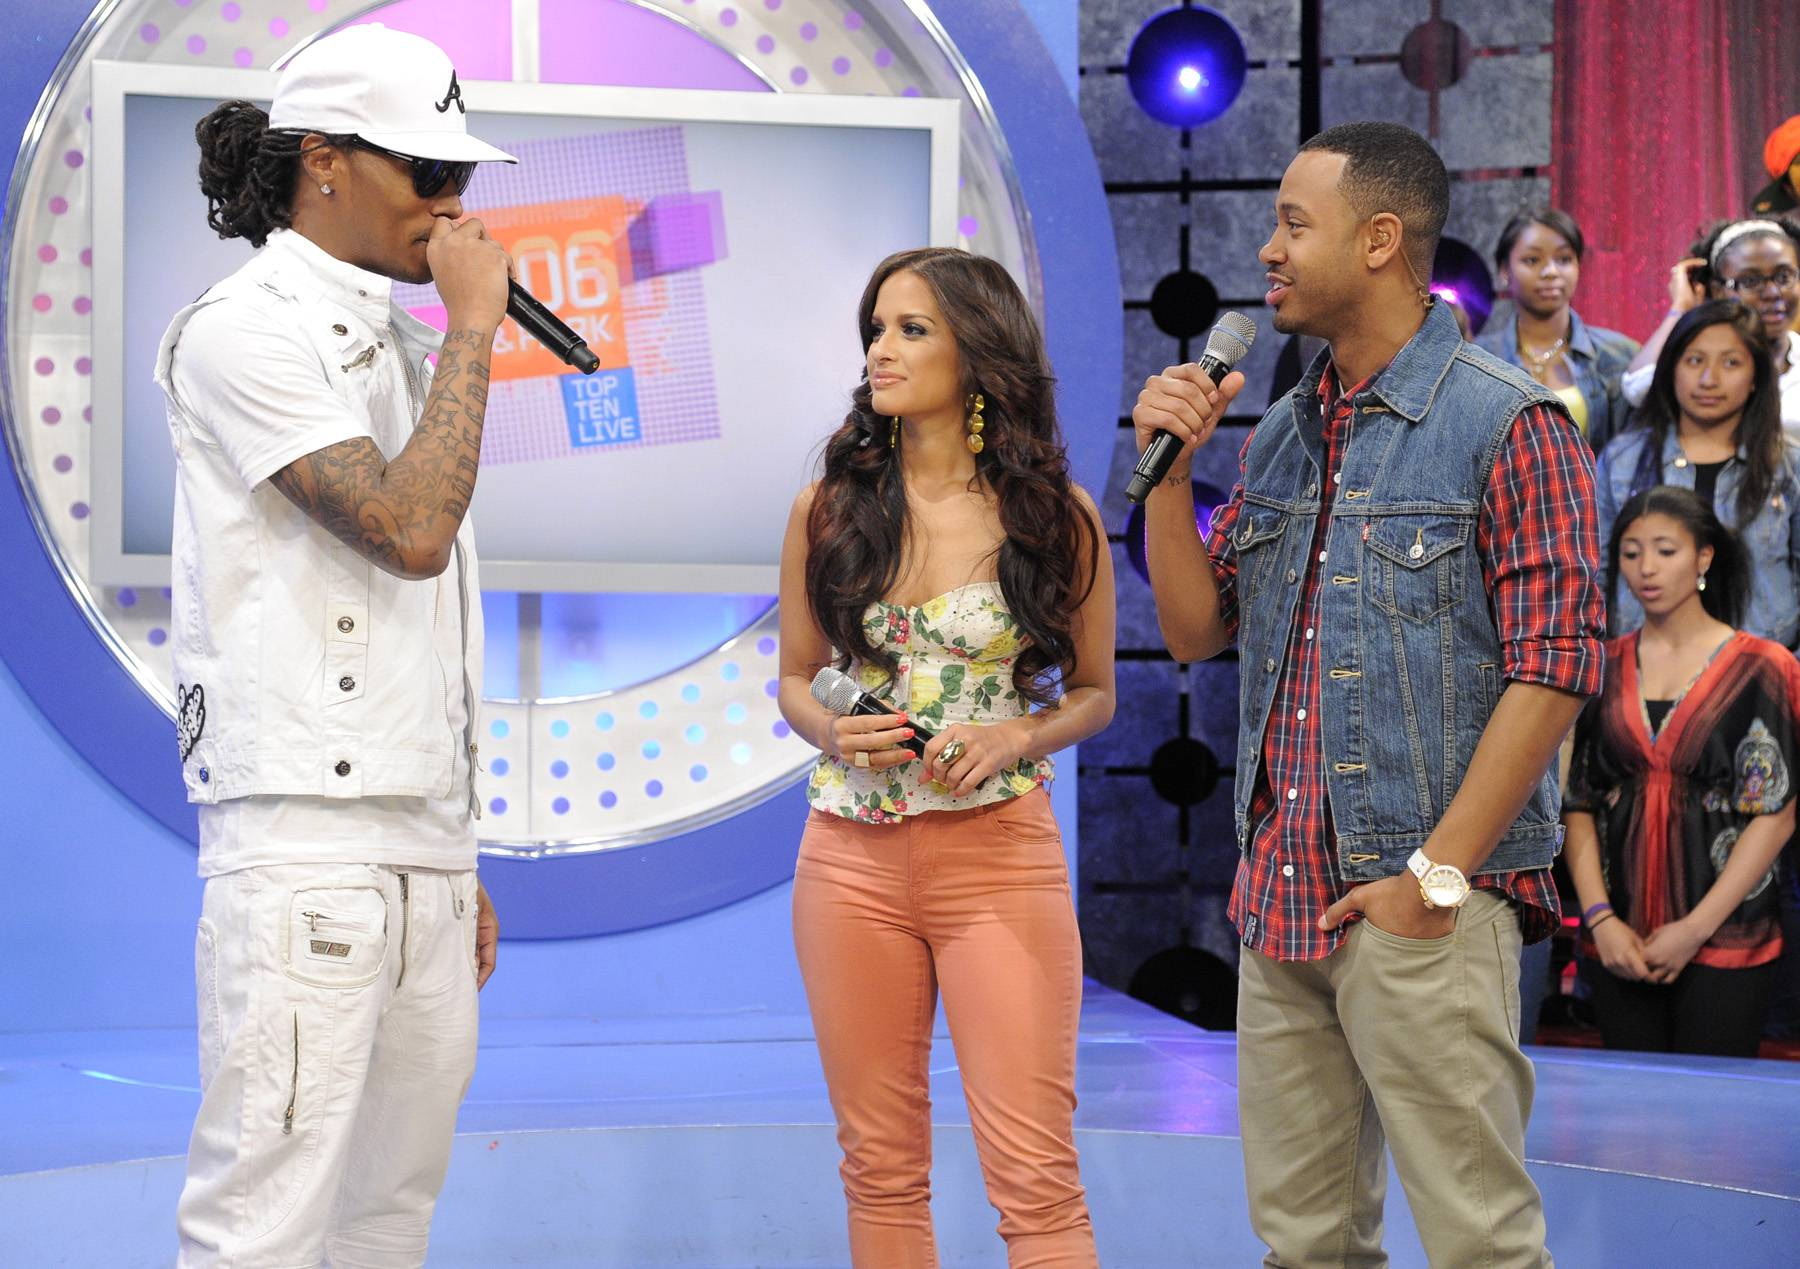 Future Discussion - Future with Rocsi Diaz and Terrence J at 106 & Park, April 20, 2012. (Photo: John Ricard / BET)